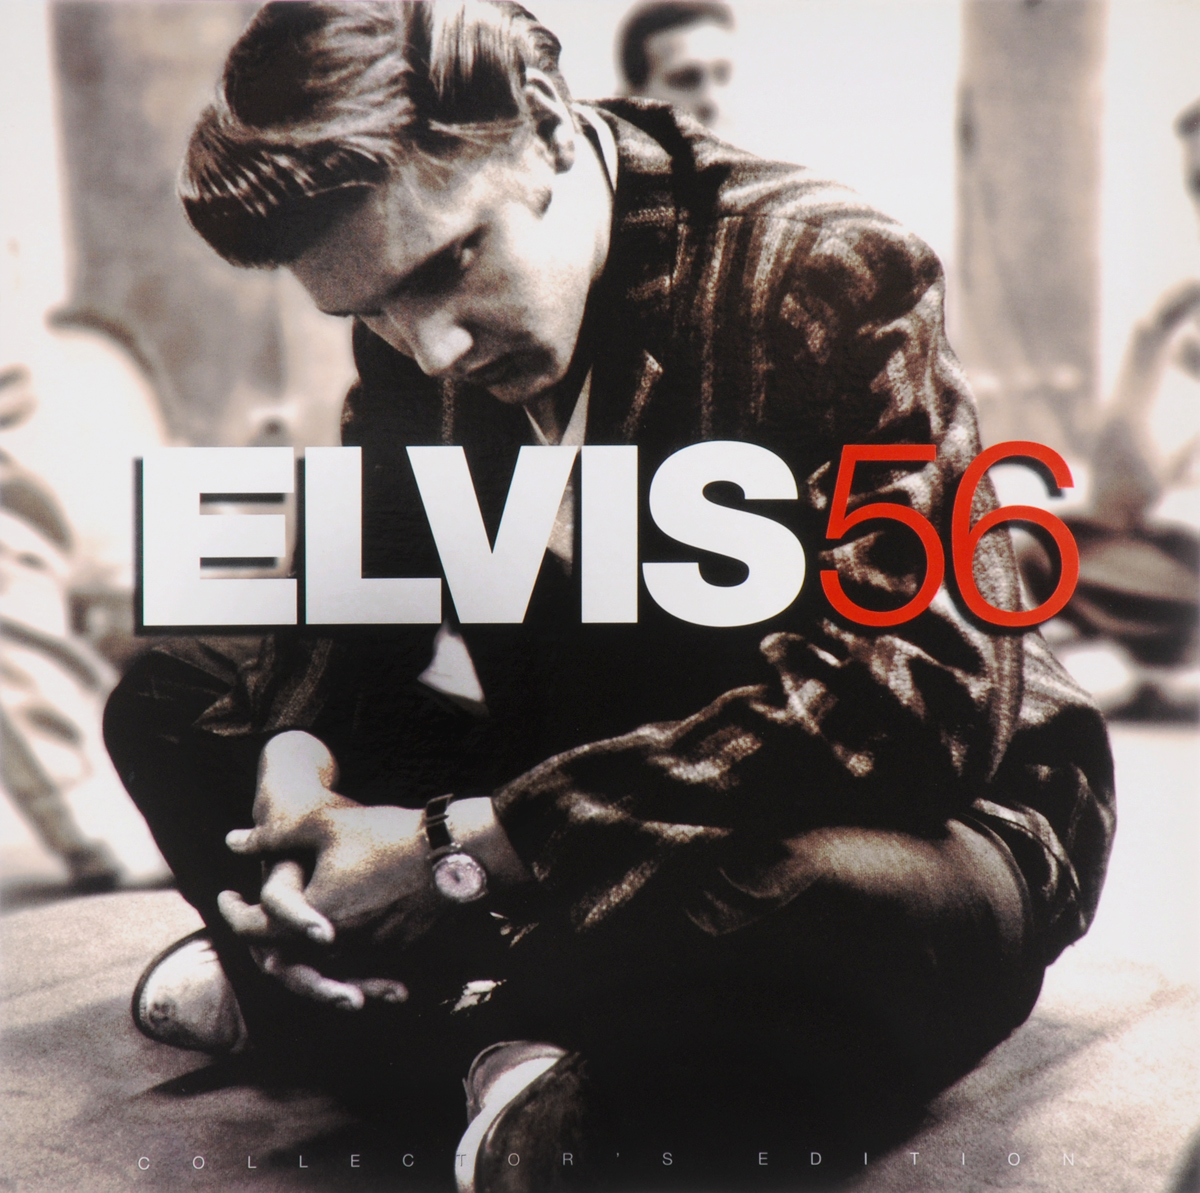 Элвис Пресли Elvis Presley. Elvis 56. Collector's Edition (LP)